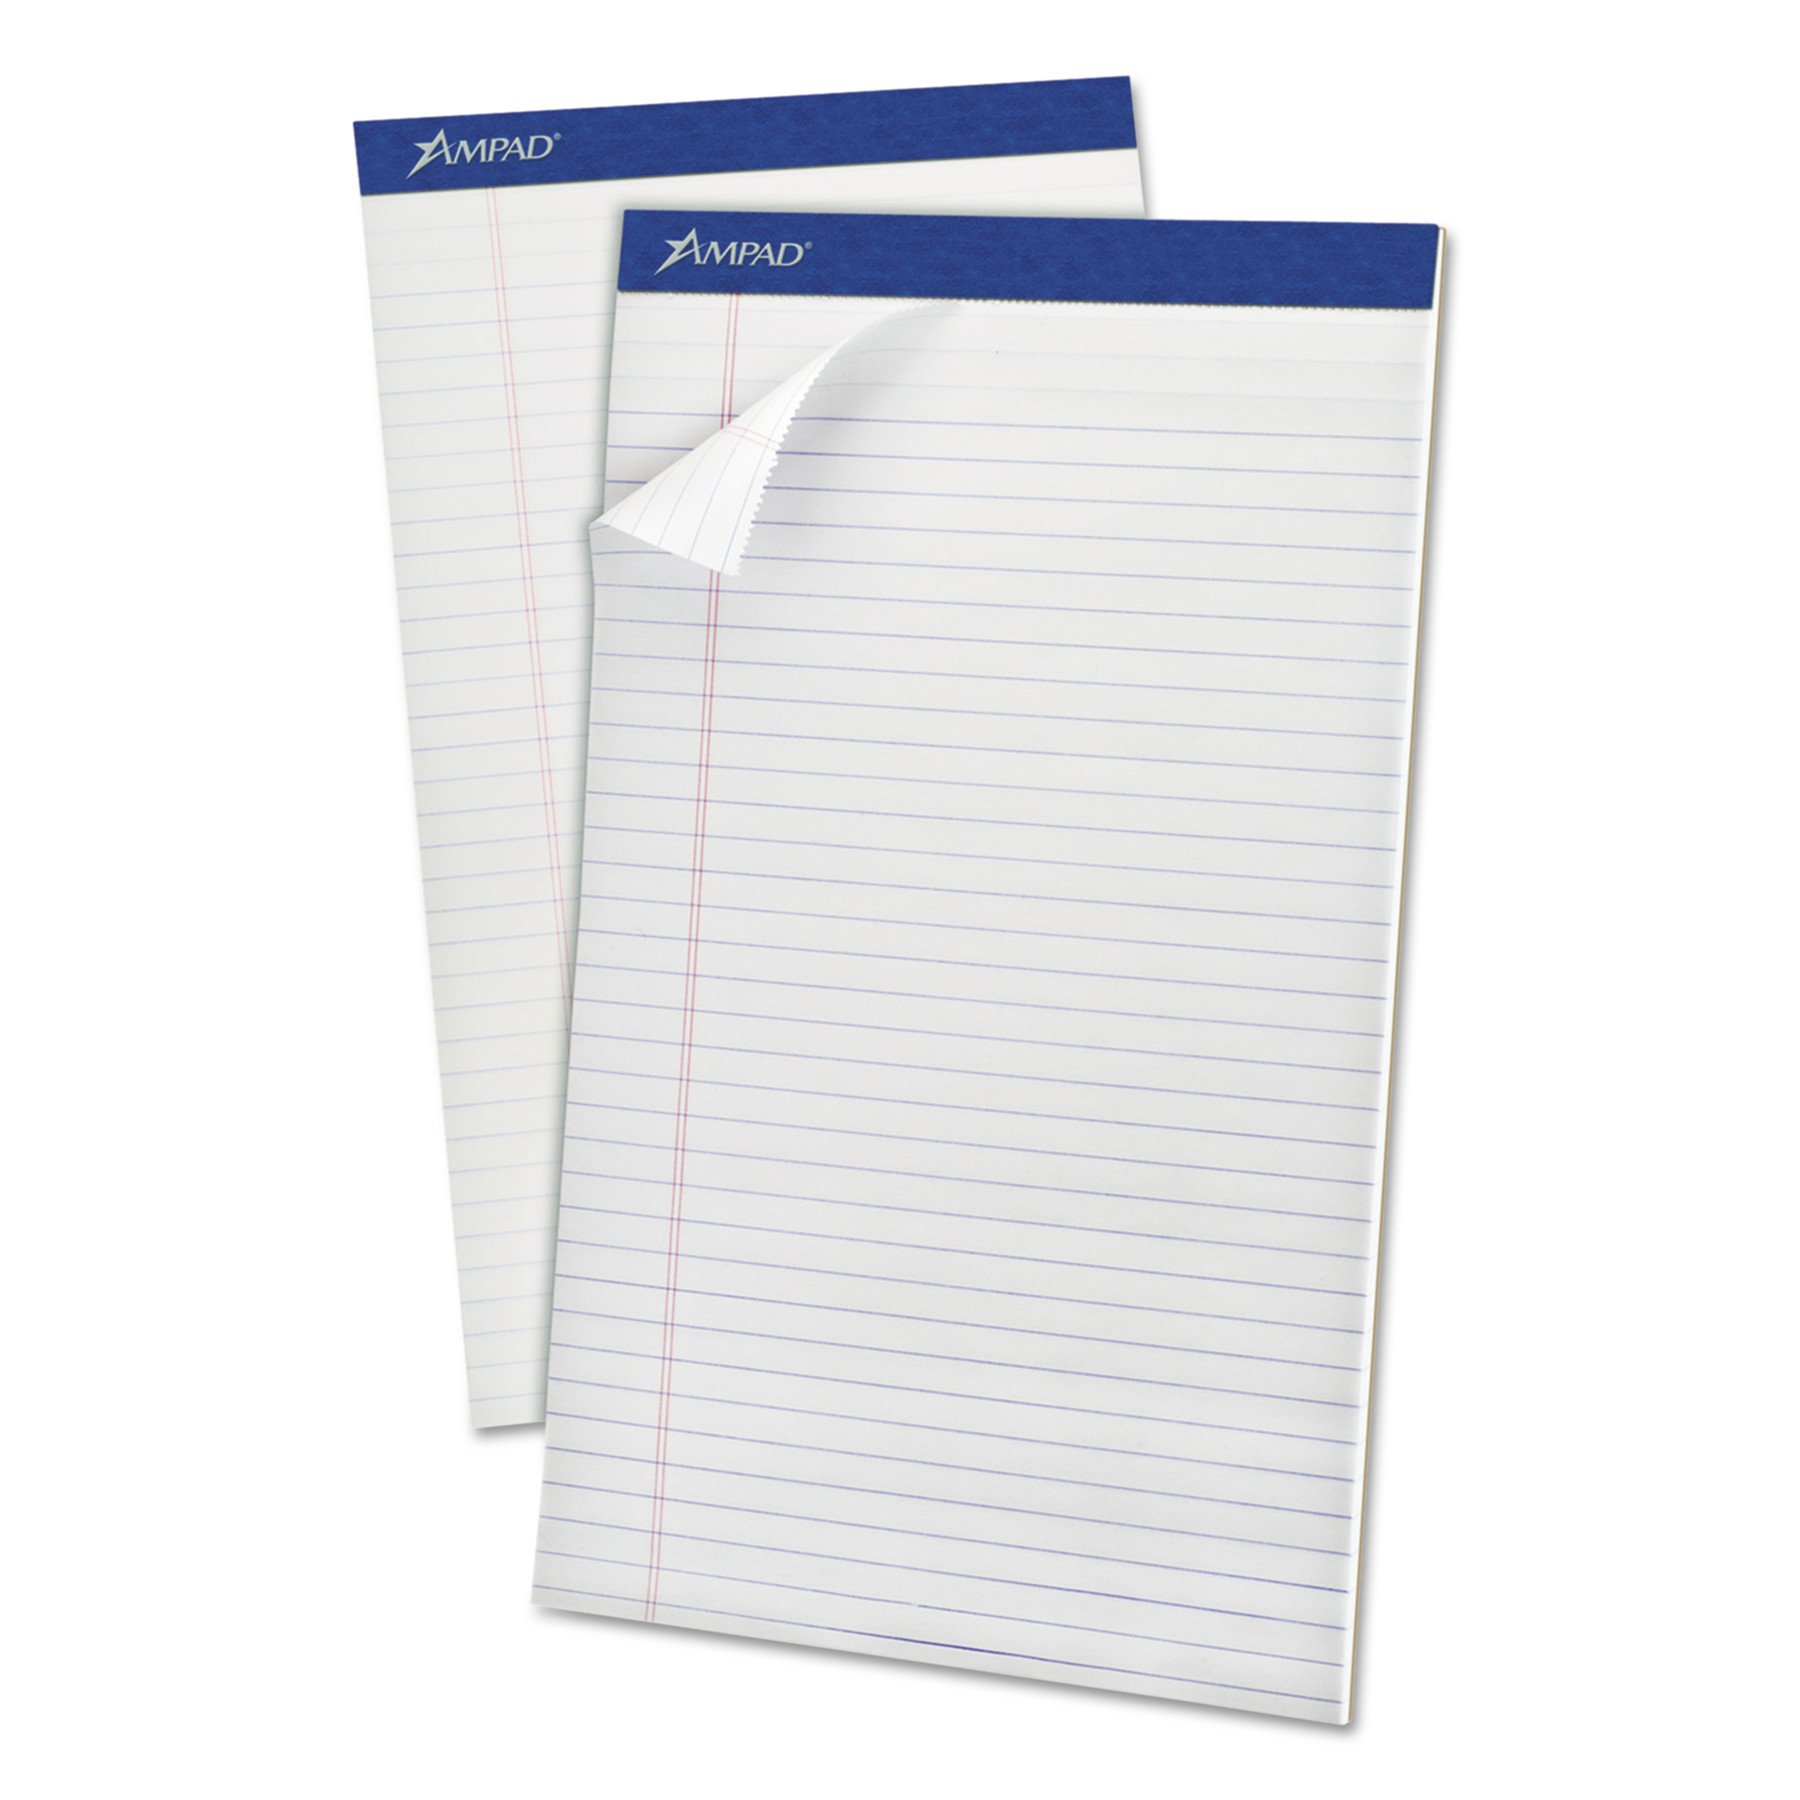 Ampad 20330 Perforated Writing Pad, 8 1/2 x 14, White, 50 Sheets (Pack of 12)